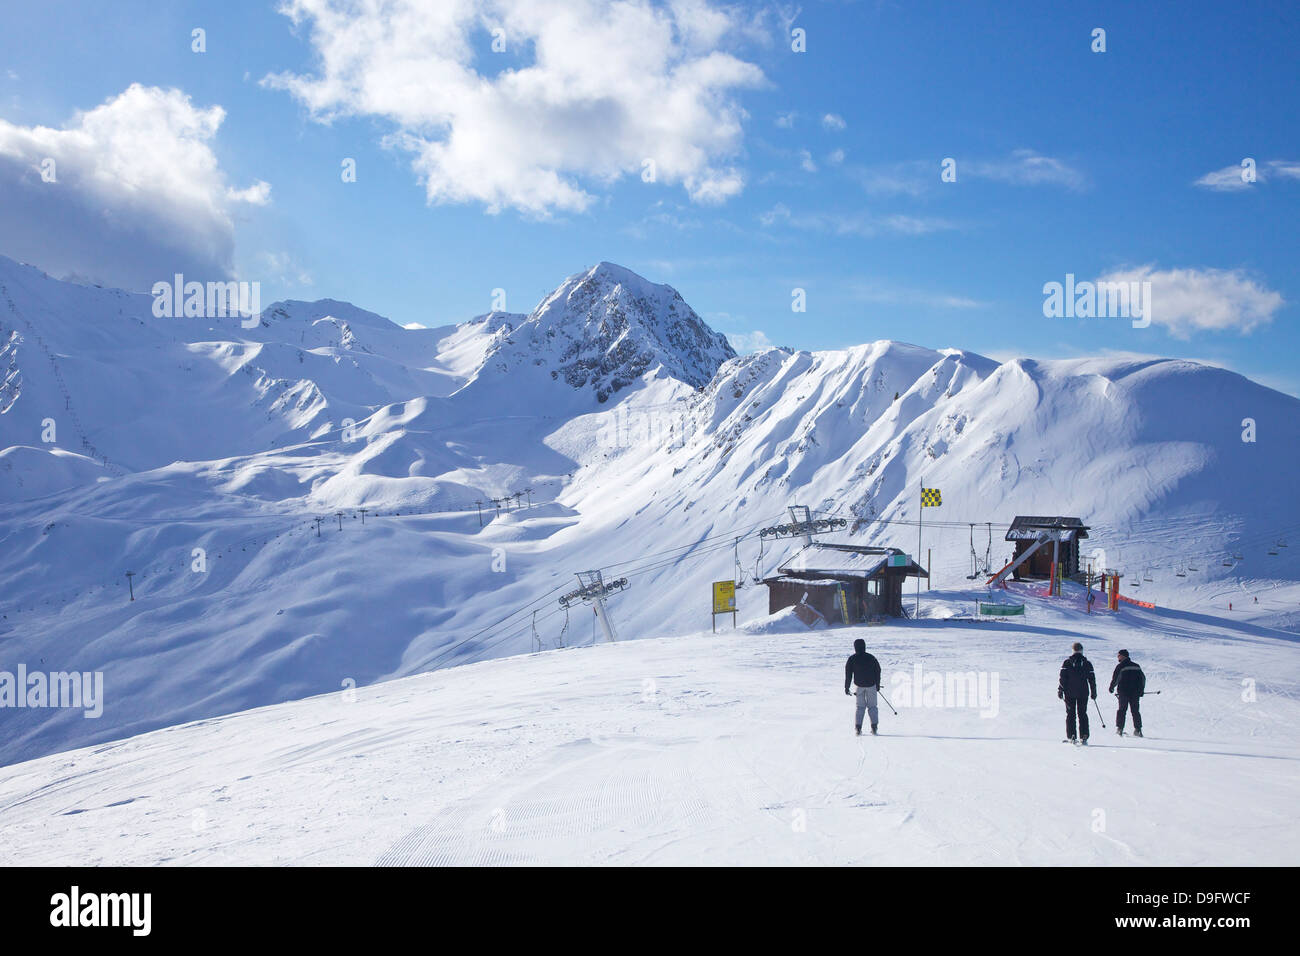 View from Dos Rond, La Plagne, Savoie, French Alps, France - Stock Image